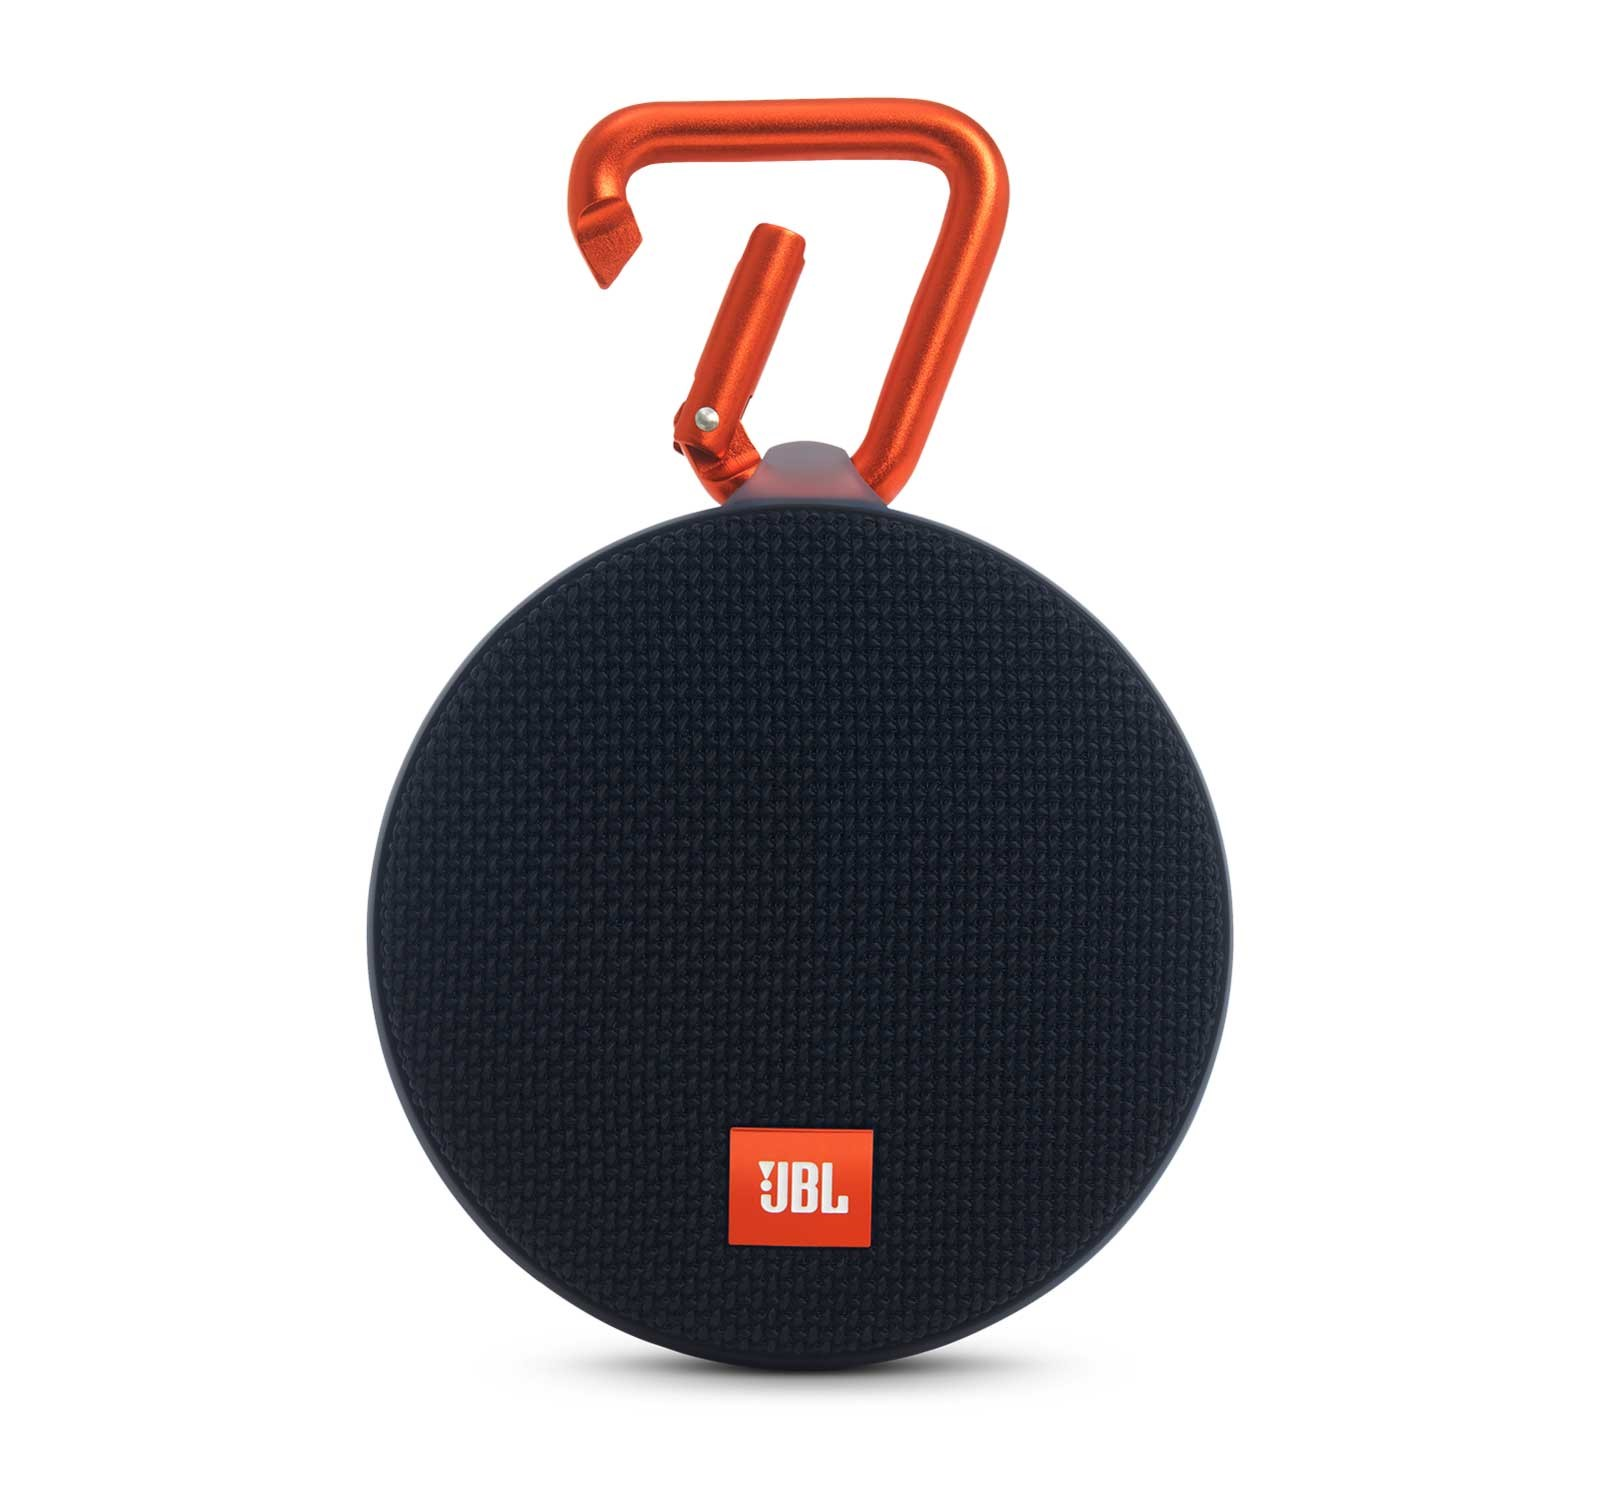 Jbl Clip2 Ultra Portable Bluetooth Speaker by Jbl